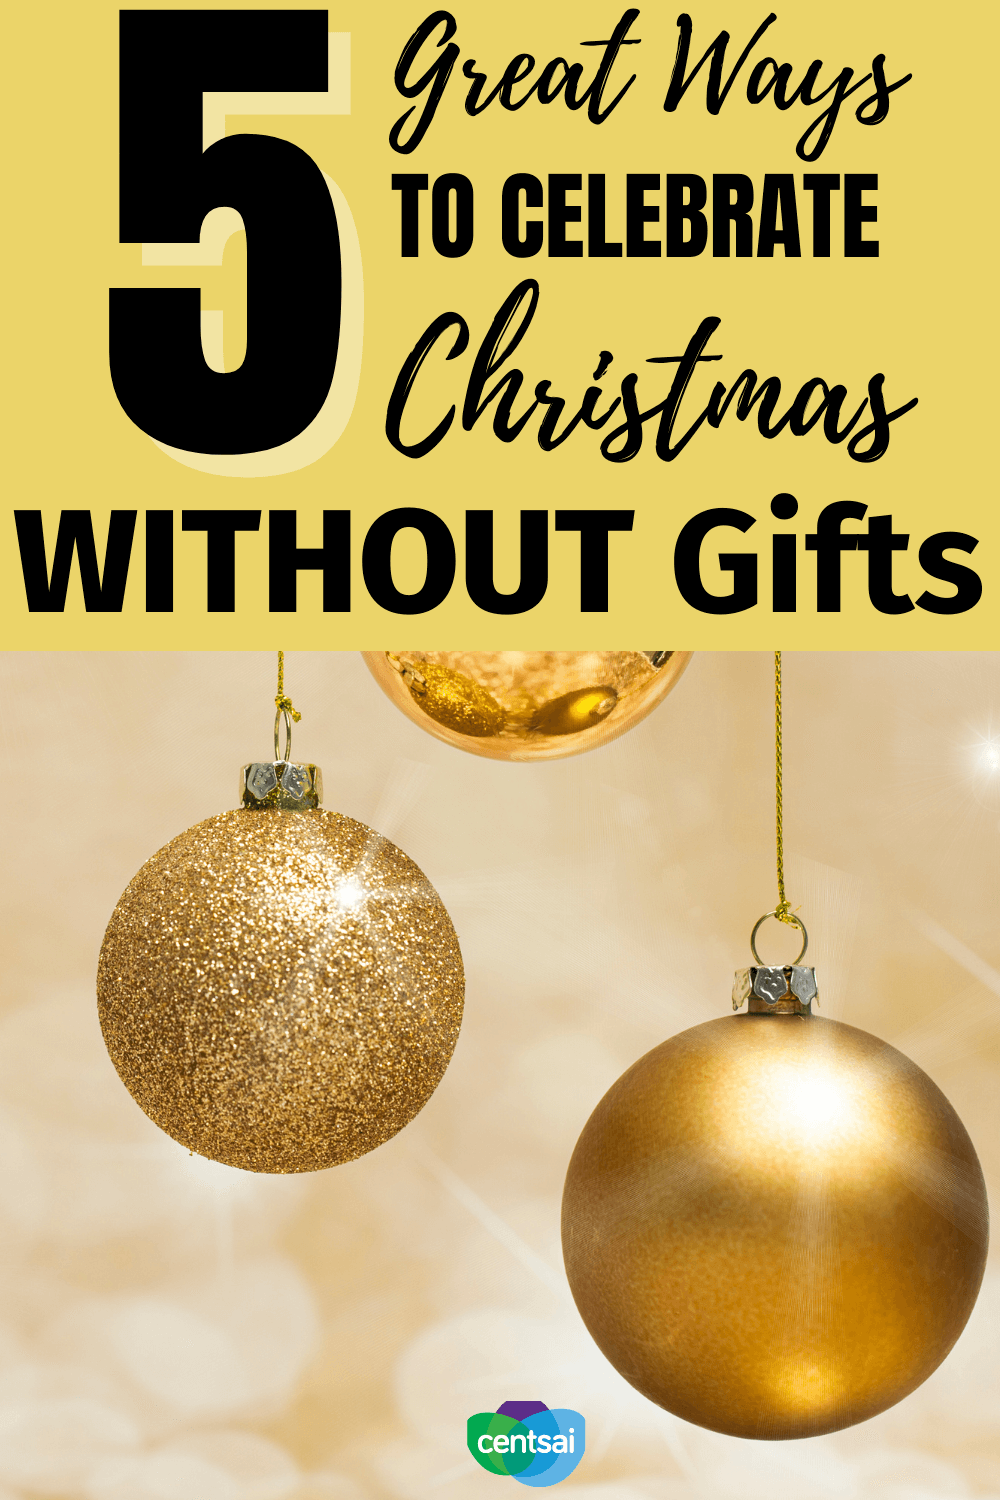 Do you know that you can have a perfect Christmas without spending money for gifts? Check out these 5 frugal hacks and ideas what we plan to do to spread holiday cheer, even though we plan to celebrate Christmas without gifts. #CentSai #frugalfun #frugalideas #Beingfrugal #holiday